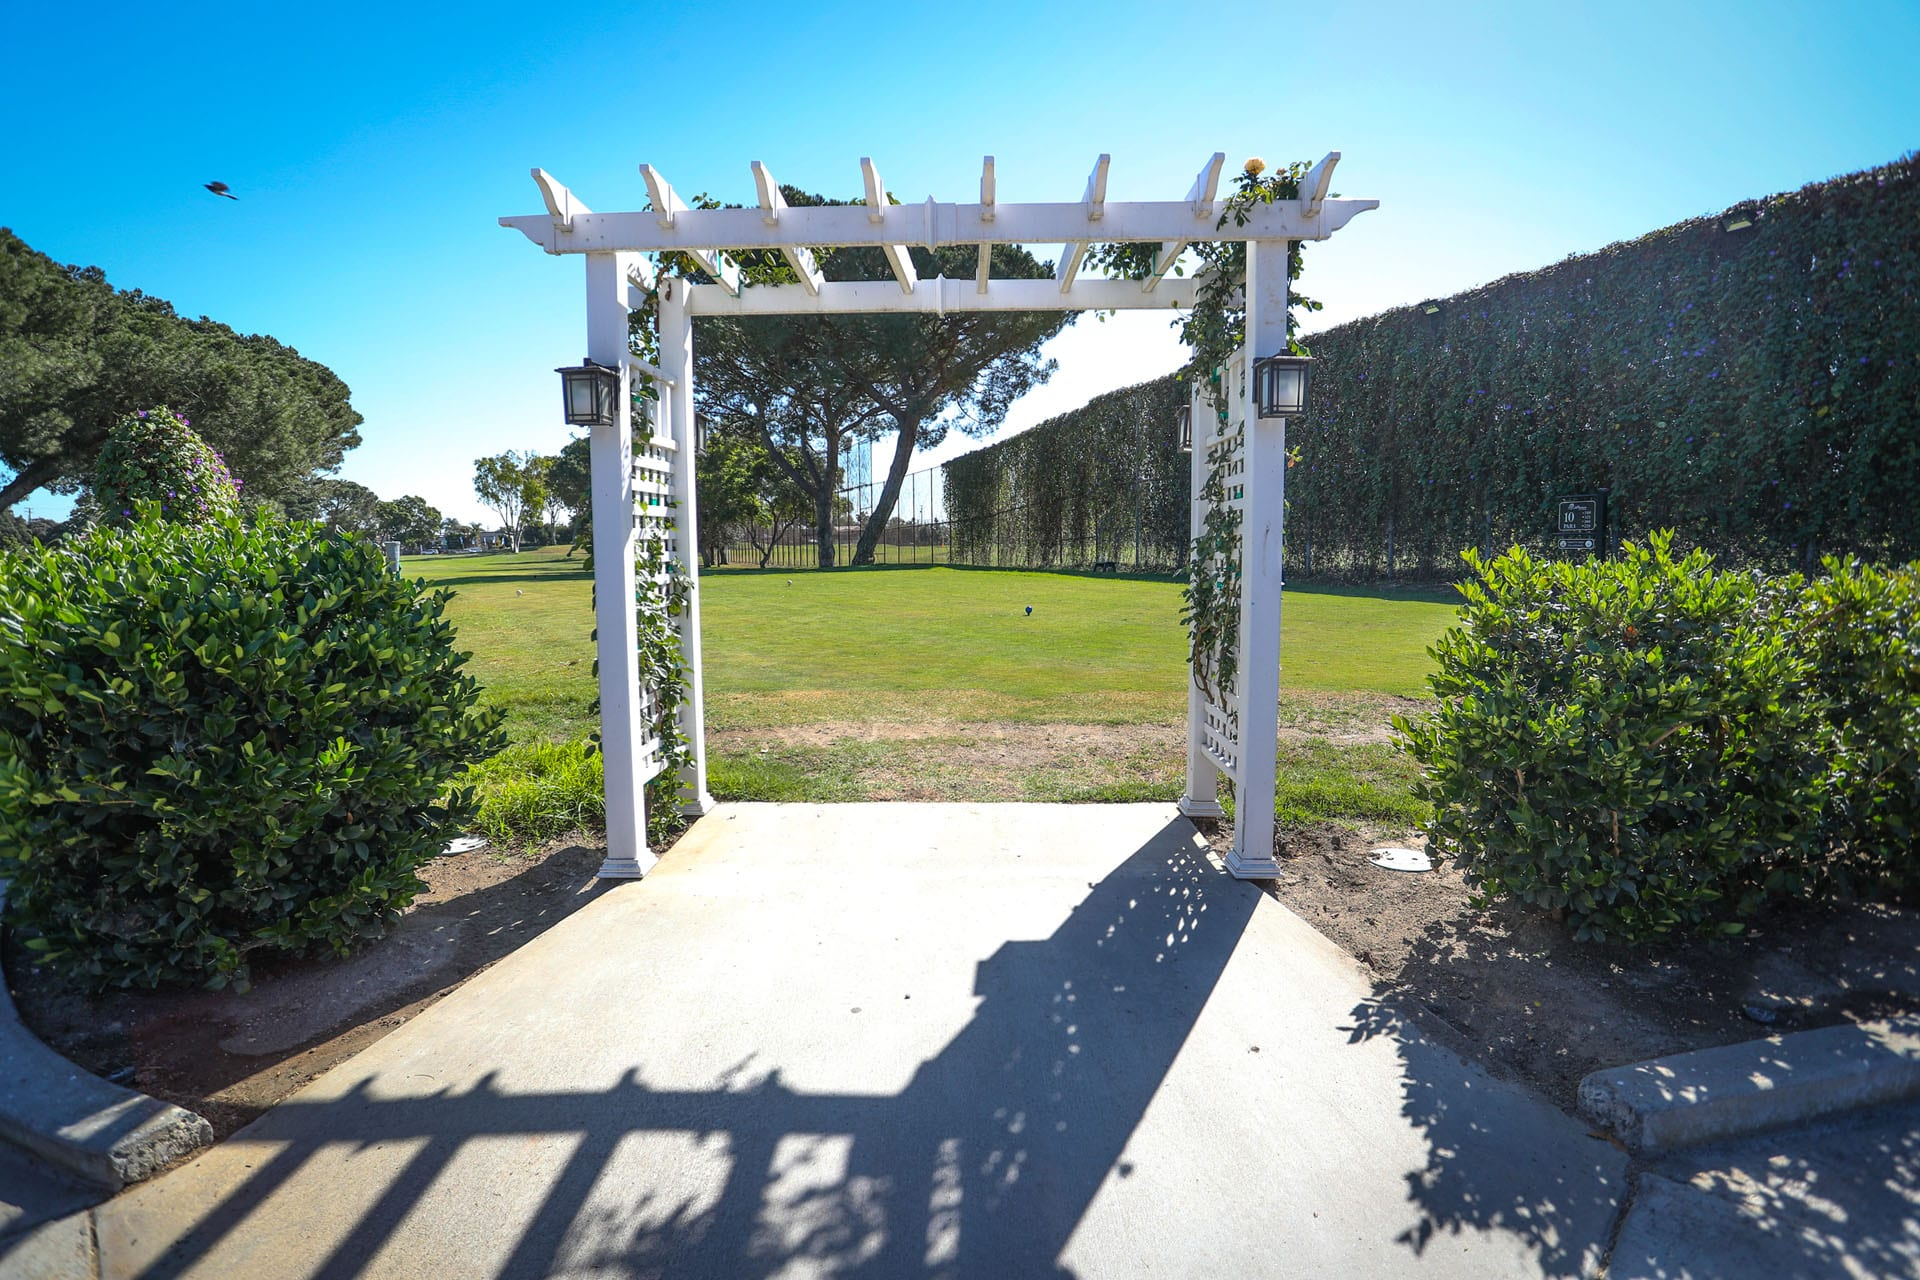 Archway to a green lawn